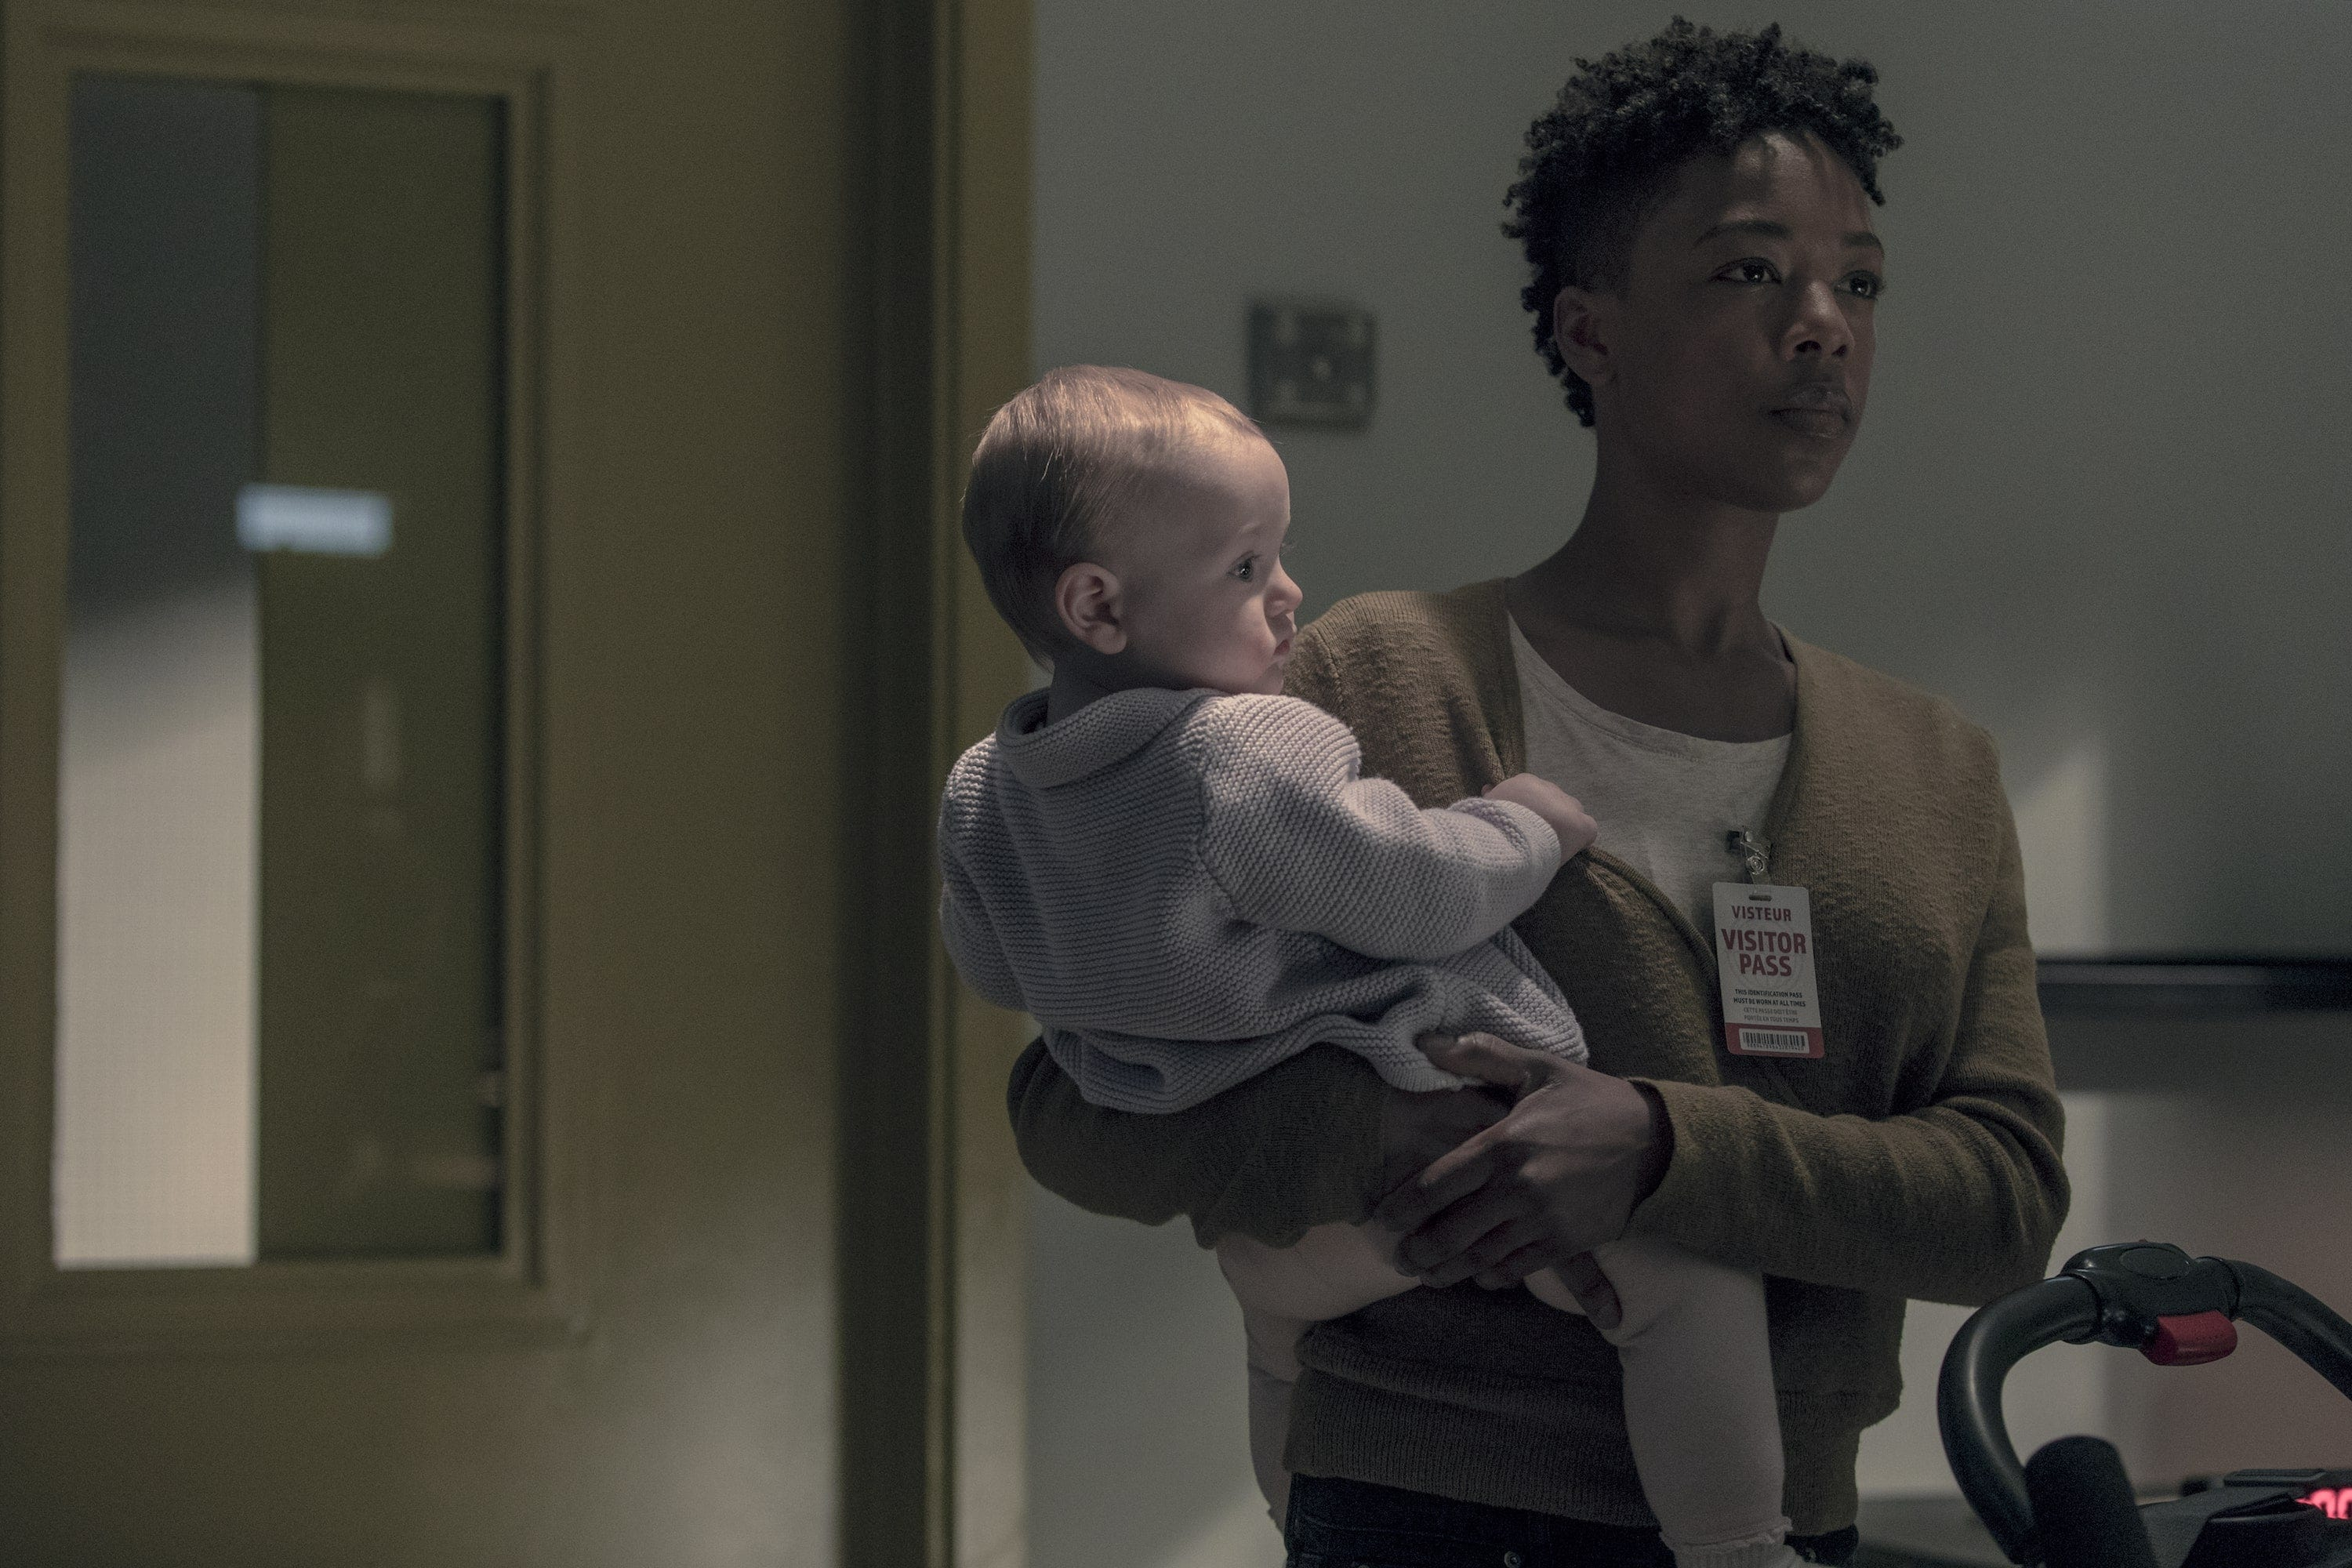 Handmaids Tale Season 3 Episode 12 Recap Sacrifice